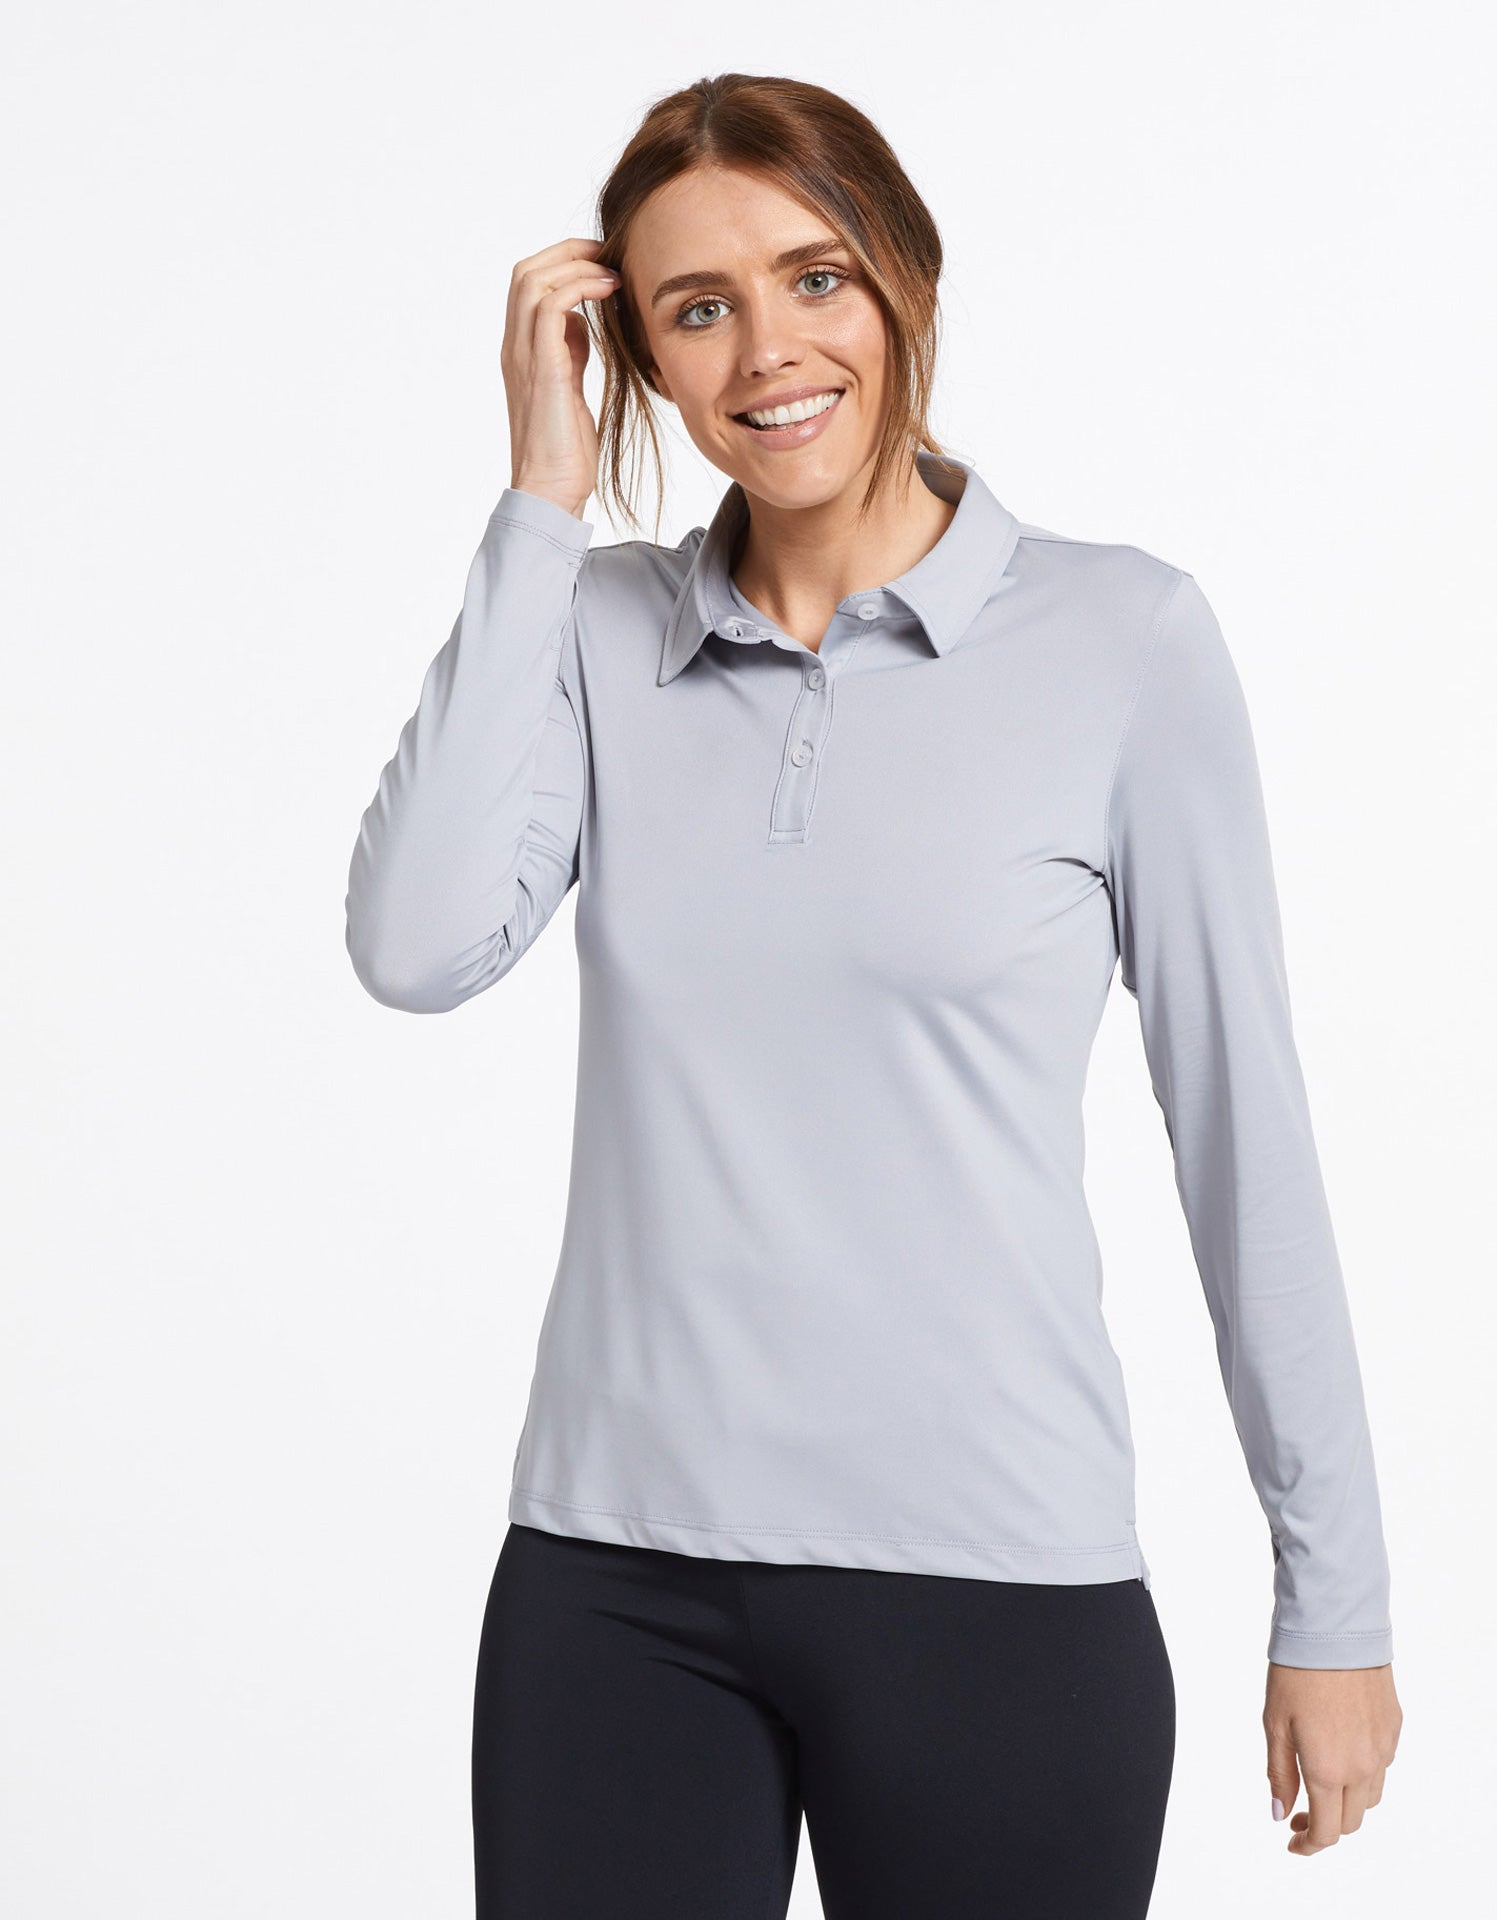 Solbari Sun Protection Women's UPF50+ Active Long Sleeve Polo Shirt in Light Grey